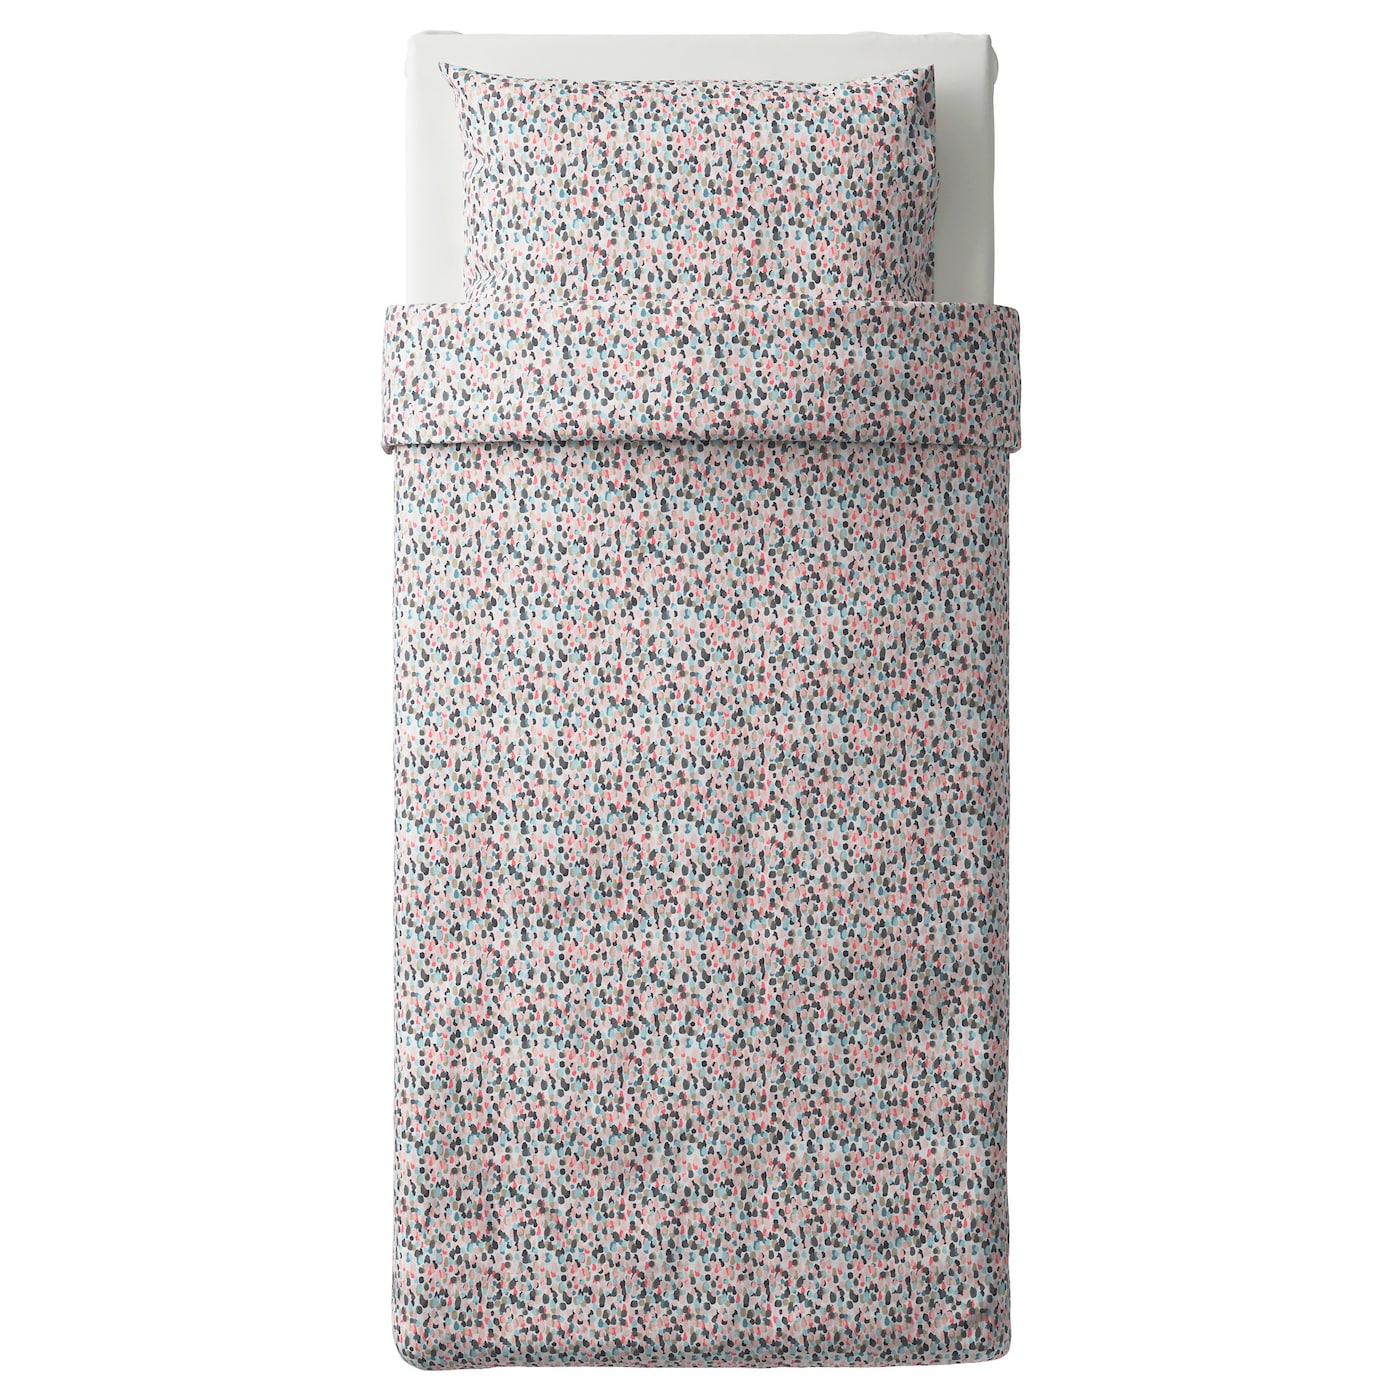 IKEA SMÅSTARR quilt cover and pillowcase Cotton, feels soft and nice against your skin.